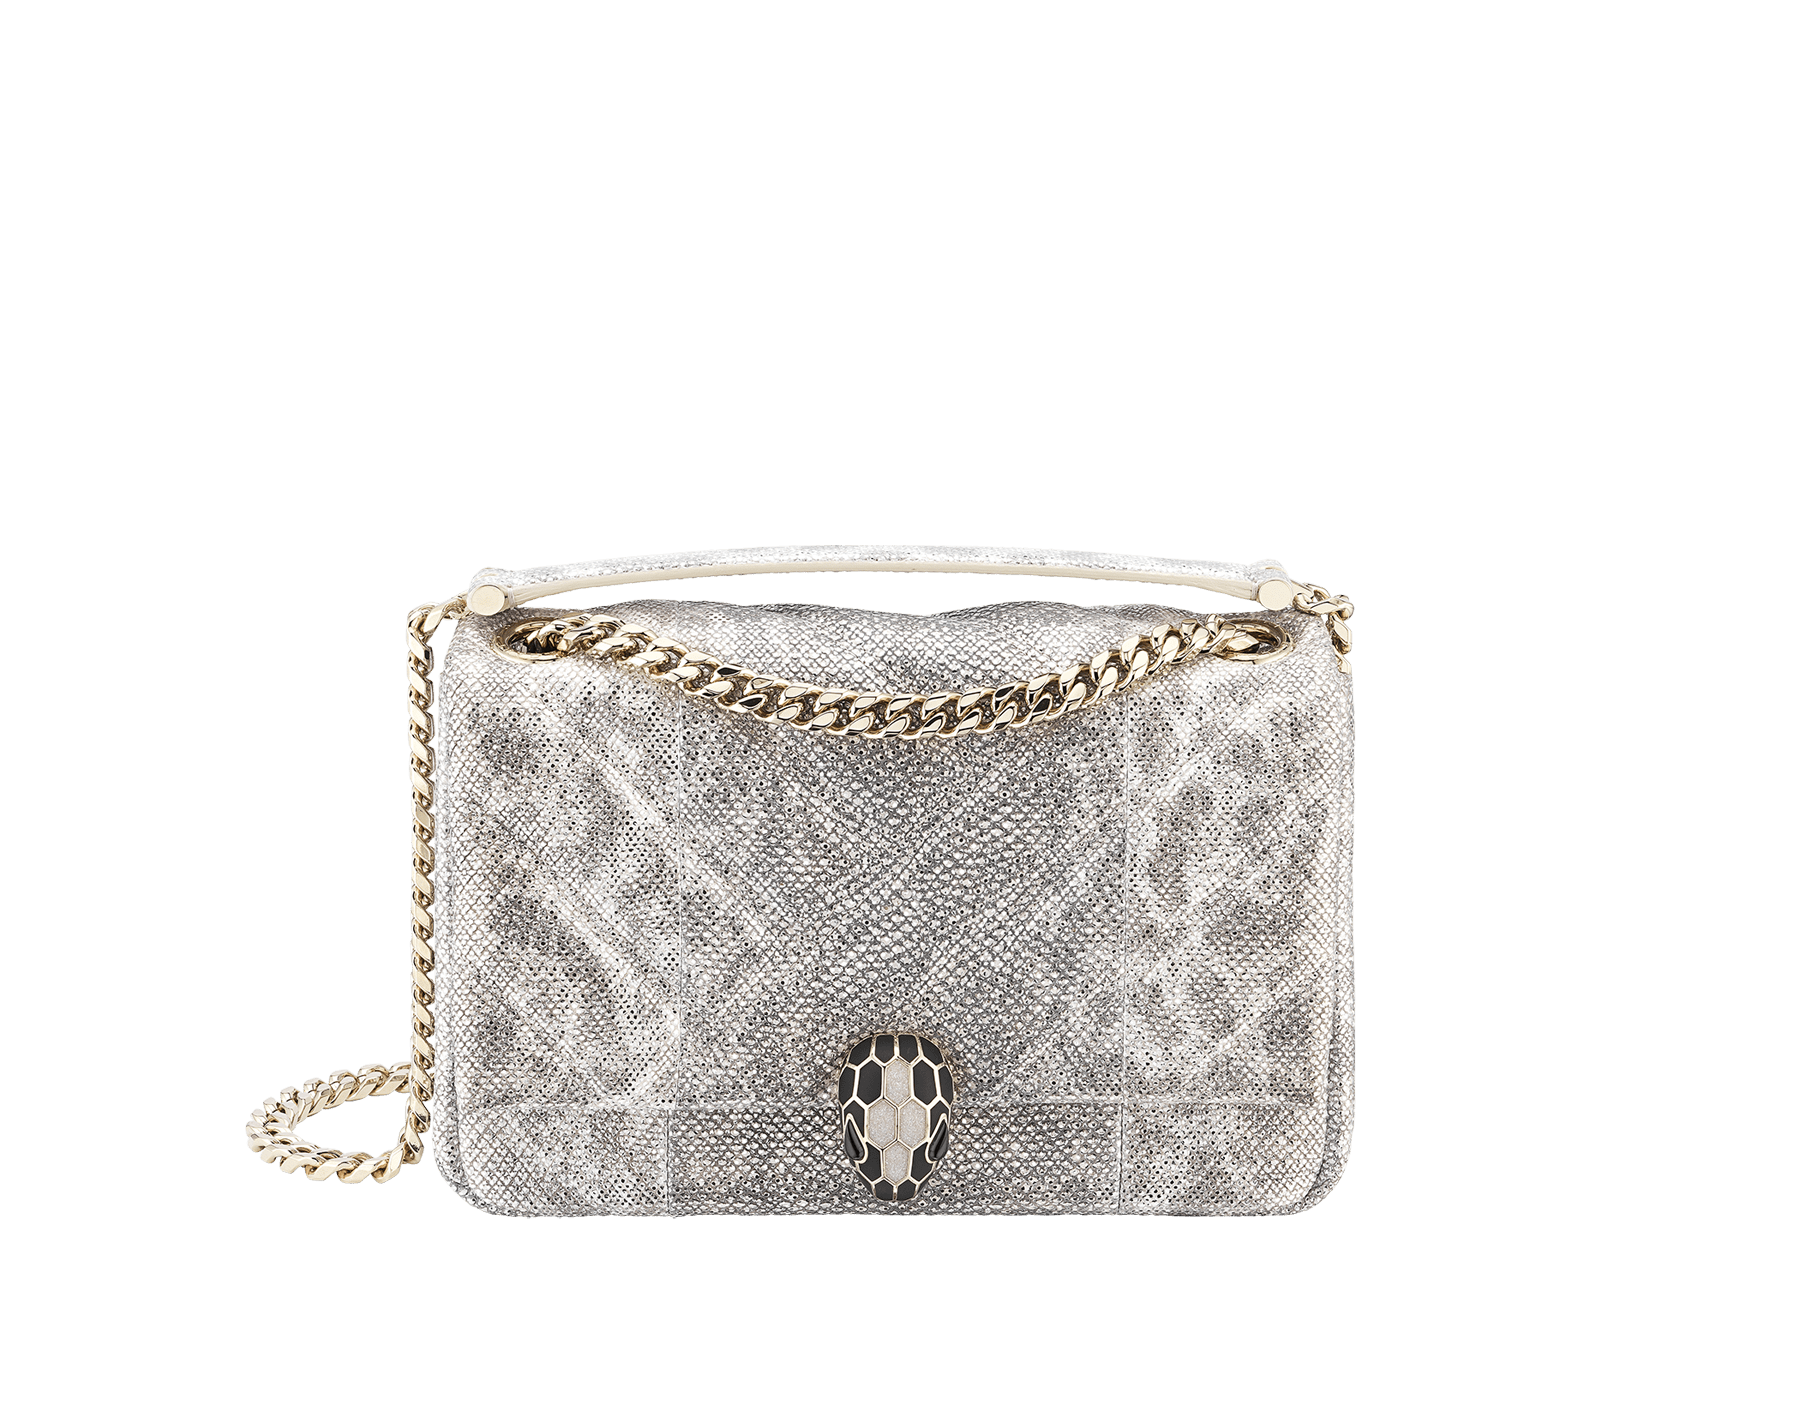 Serpenti Cabochon shoulder bag in soft quilted white agate metallic karung skin, with a graphic motif. Light gold brass plated tempting snake head closure in matte black and glitter white agate enamel, with black onyx eyes. 288805 image 1